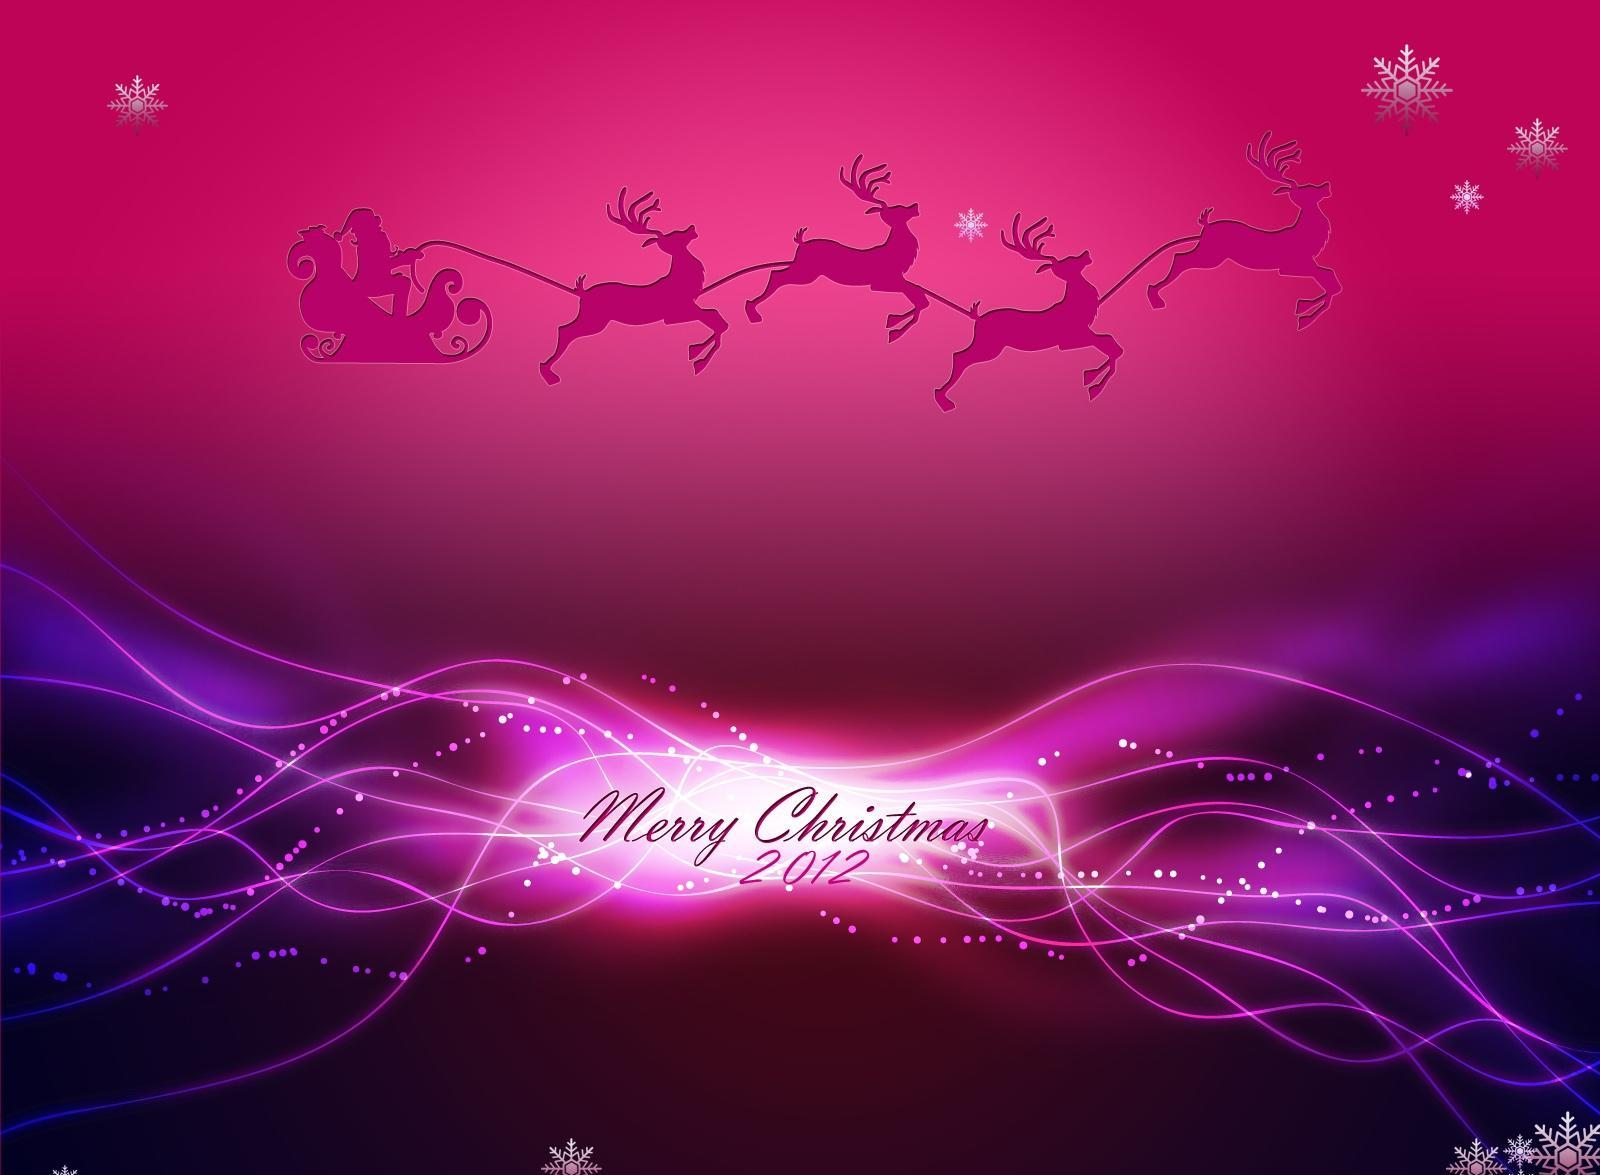 Beautiful Merry Christmas 2012 Wallpapers - 1600x1175 - 129617